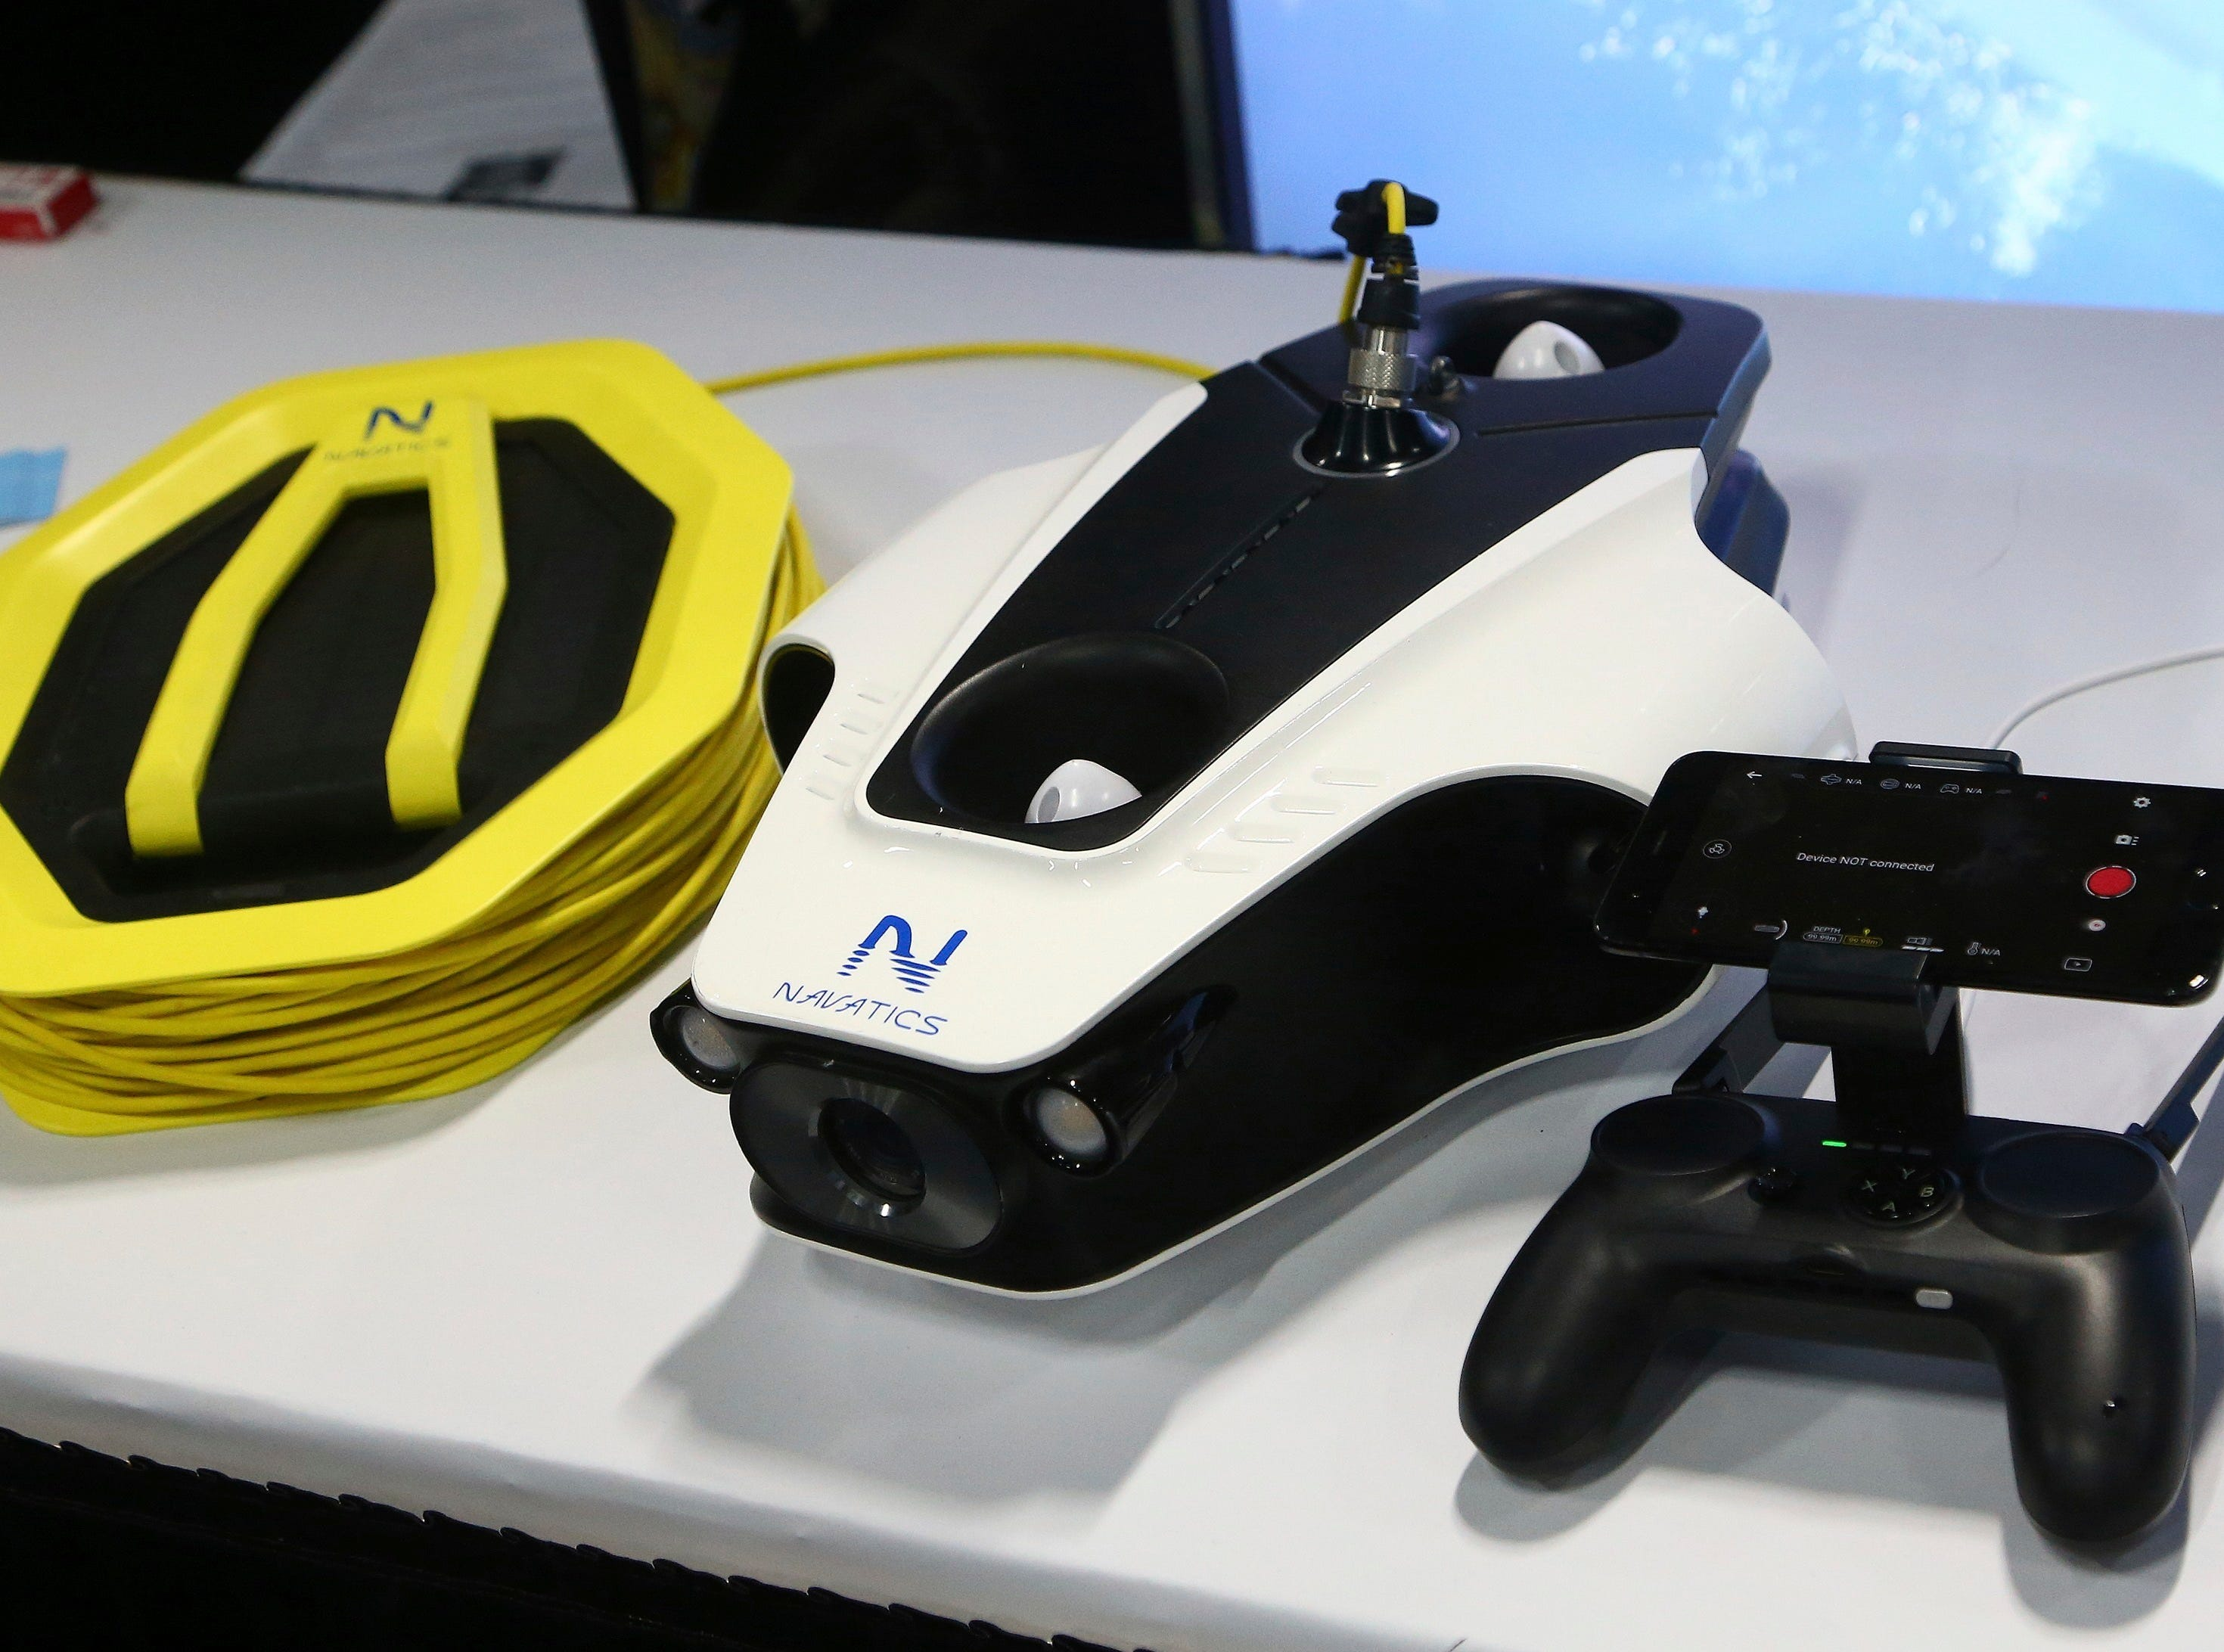 Navatics MITO displays its underwater drone with 4K camera at the CES Unveiled at CES International on Sunday, Jan. 6, 2019, in Las Vegas.